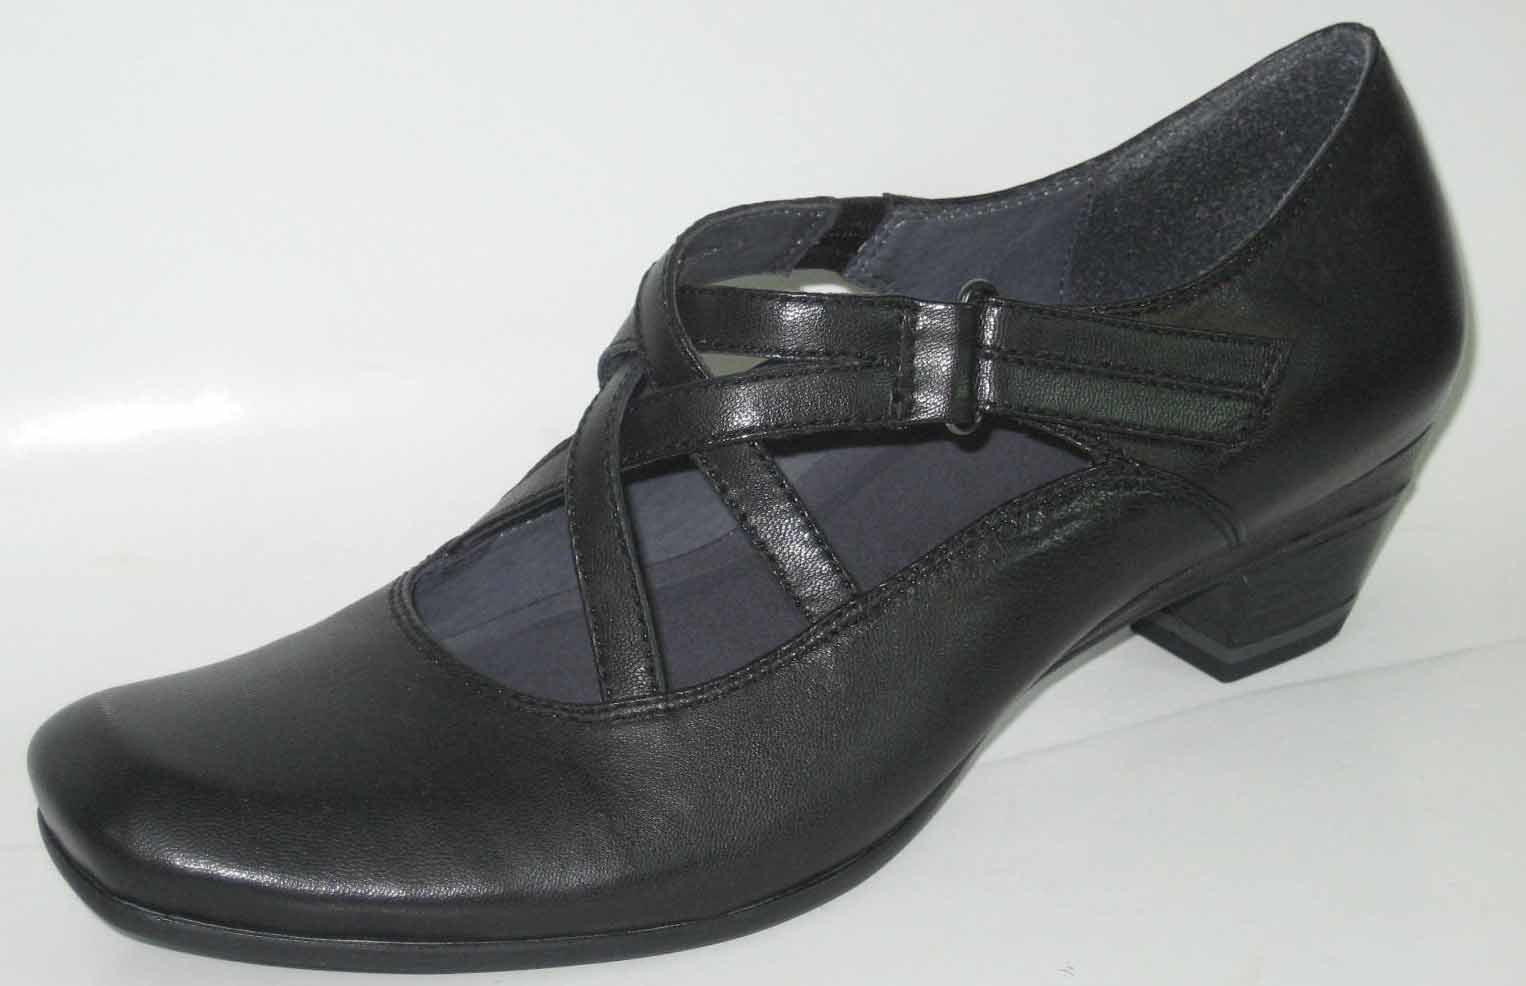 Women's ATS Leather Shoes 041013 01.JPG